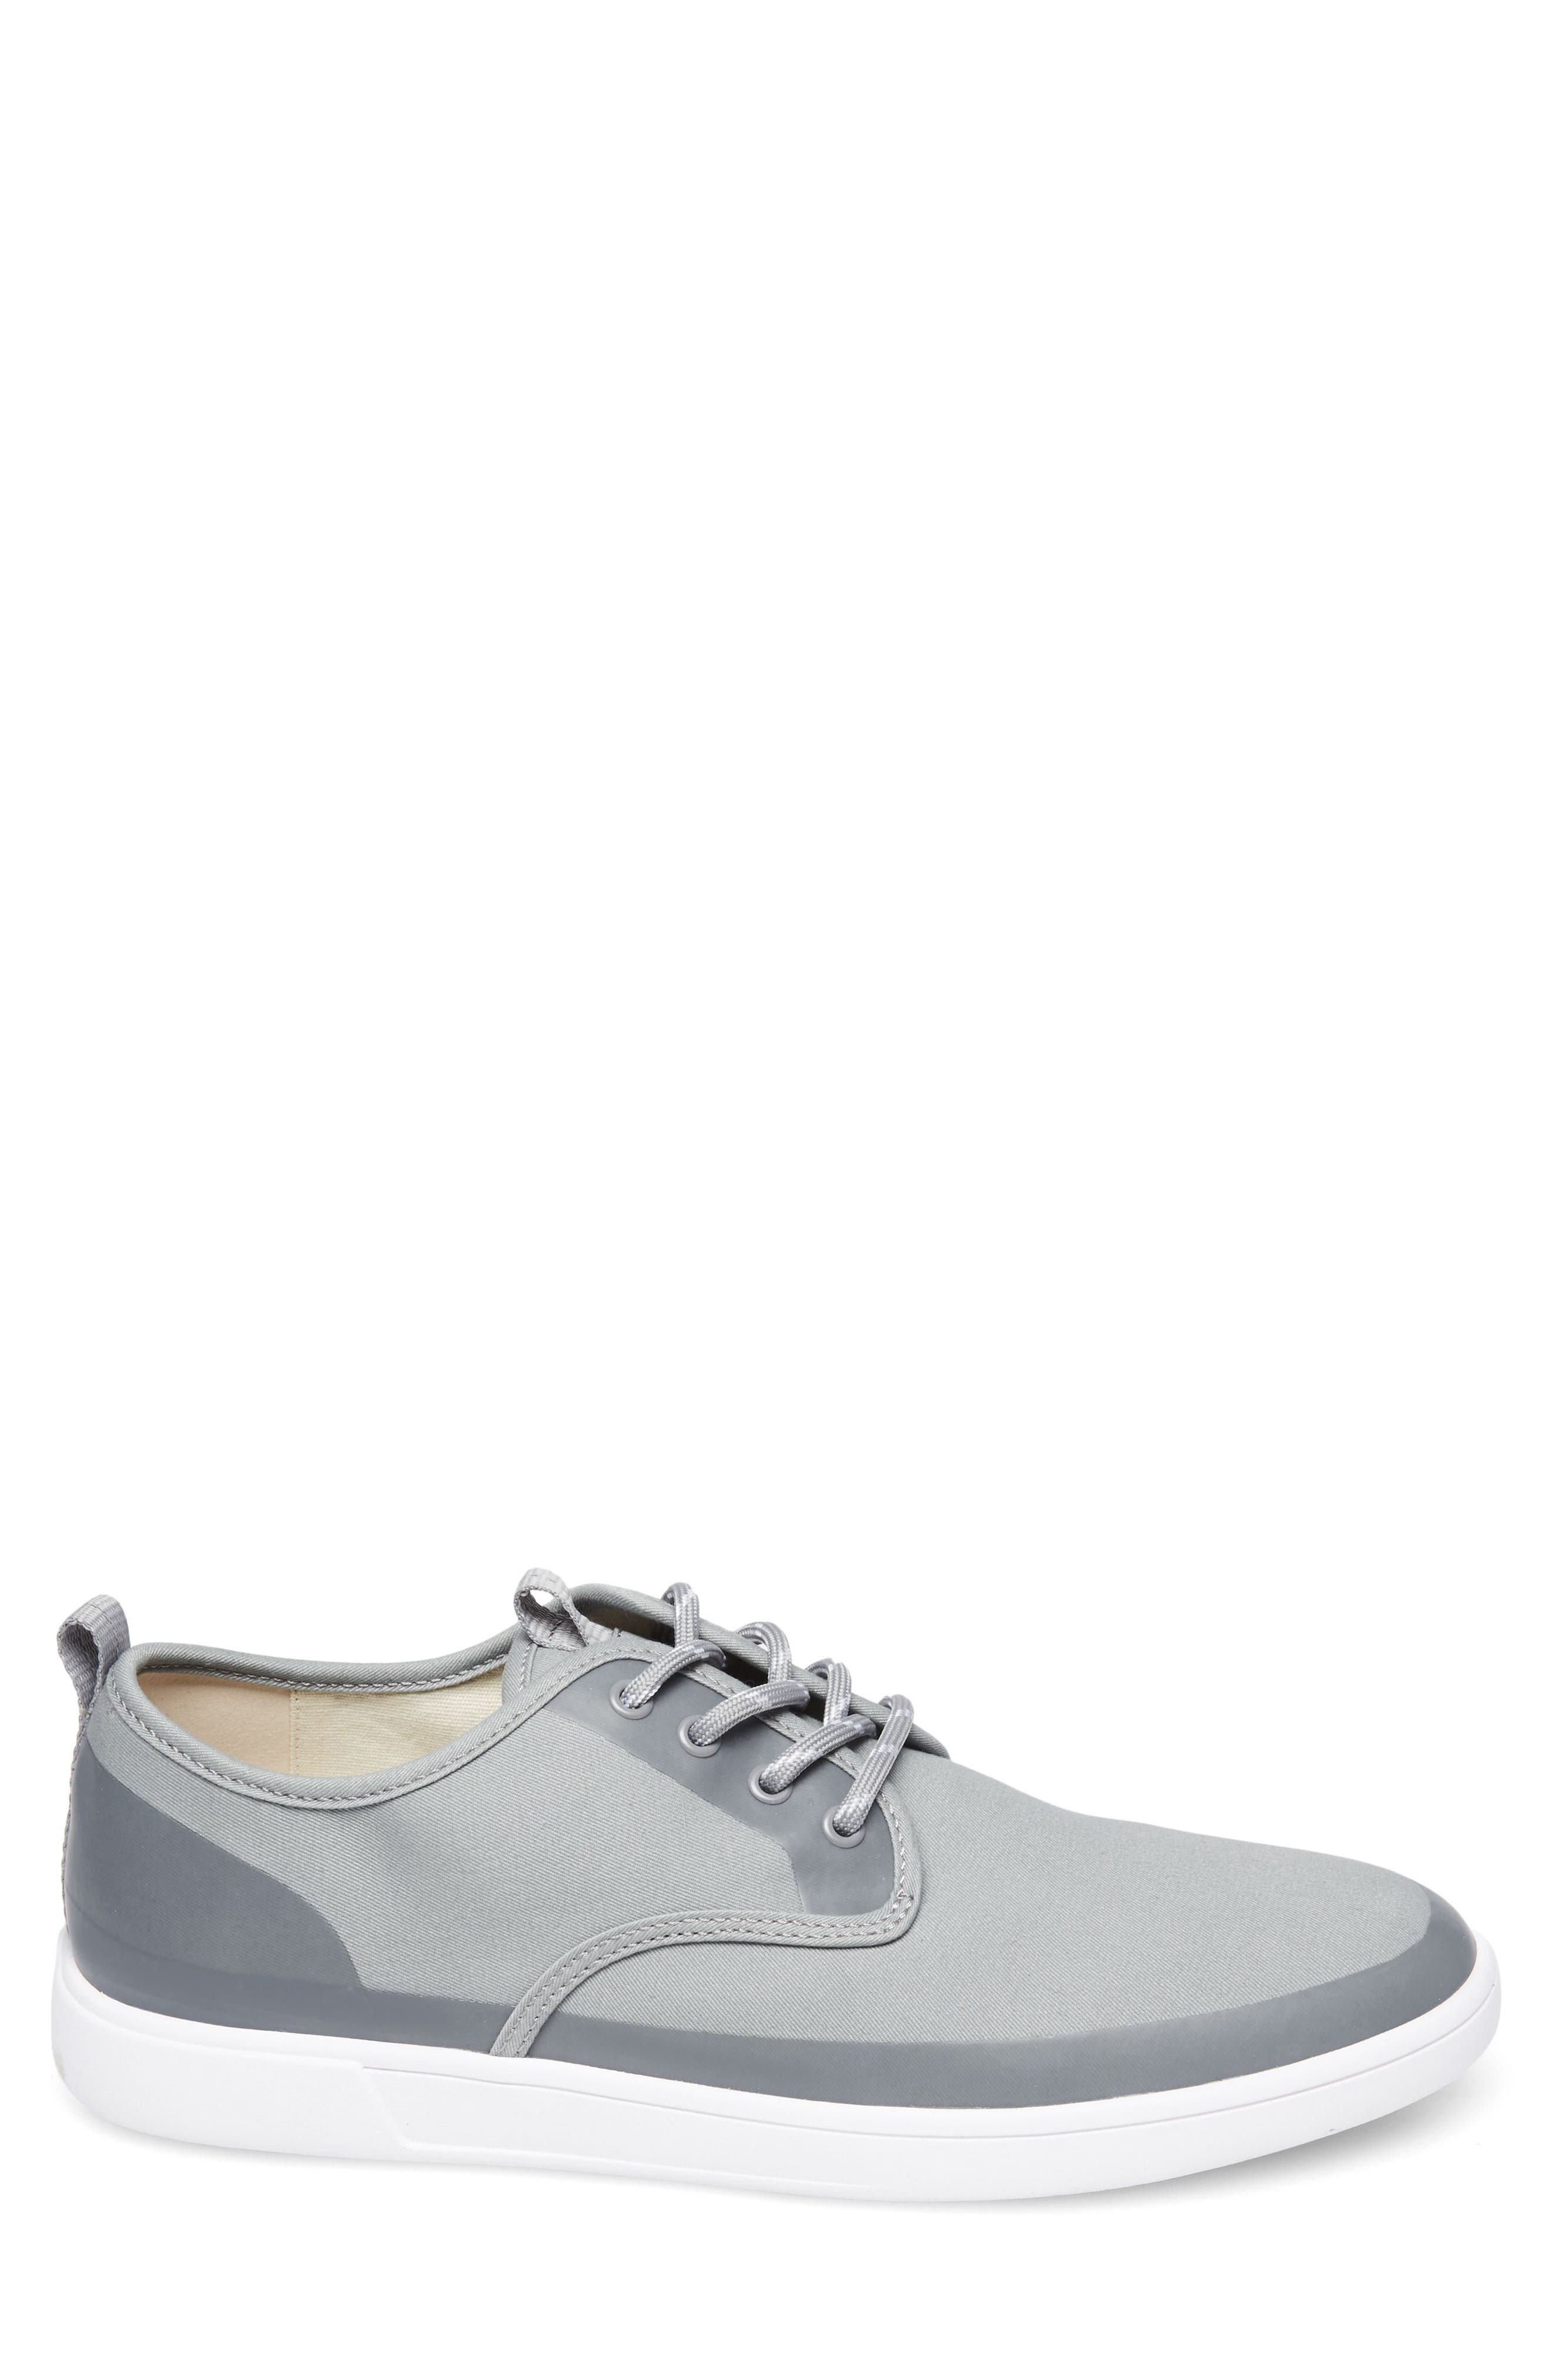 Fayette Low Top Sneaker,                             Alternate thumbnail 3, color,                             Grey Fabric